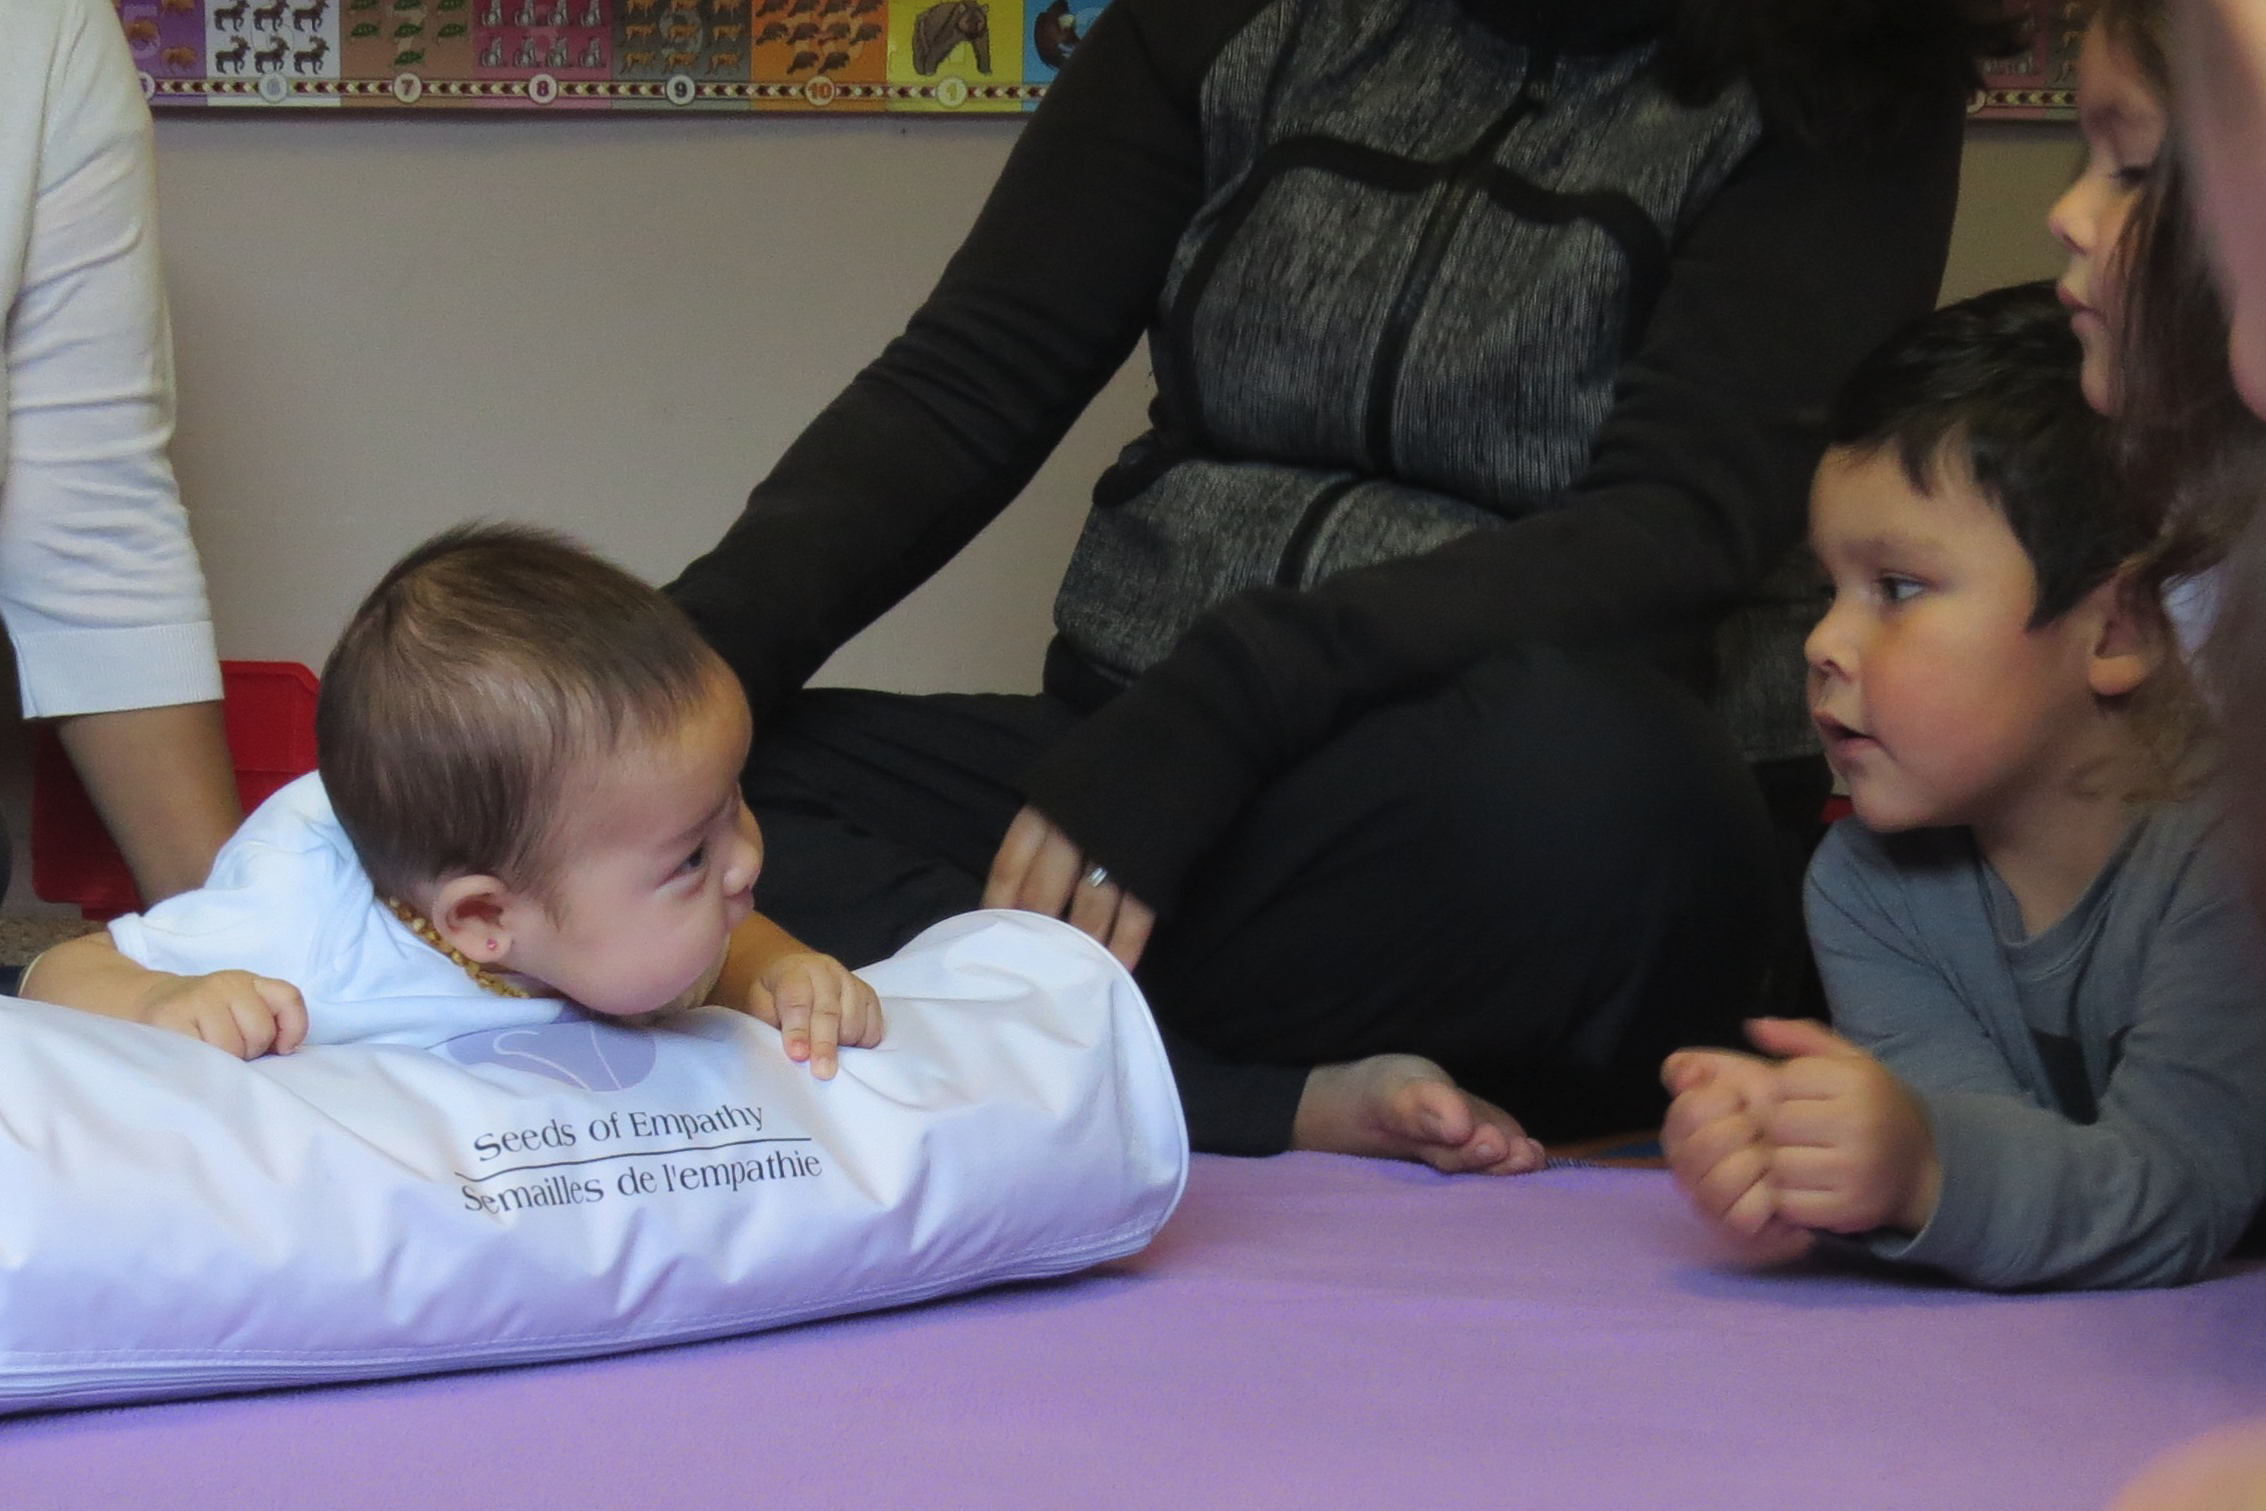 A student watches from the edge of the lavender blanket as a baby supported by a log pillows looks back at him.